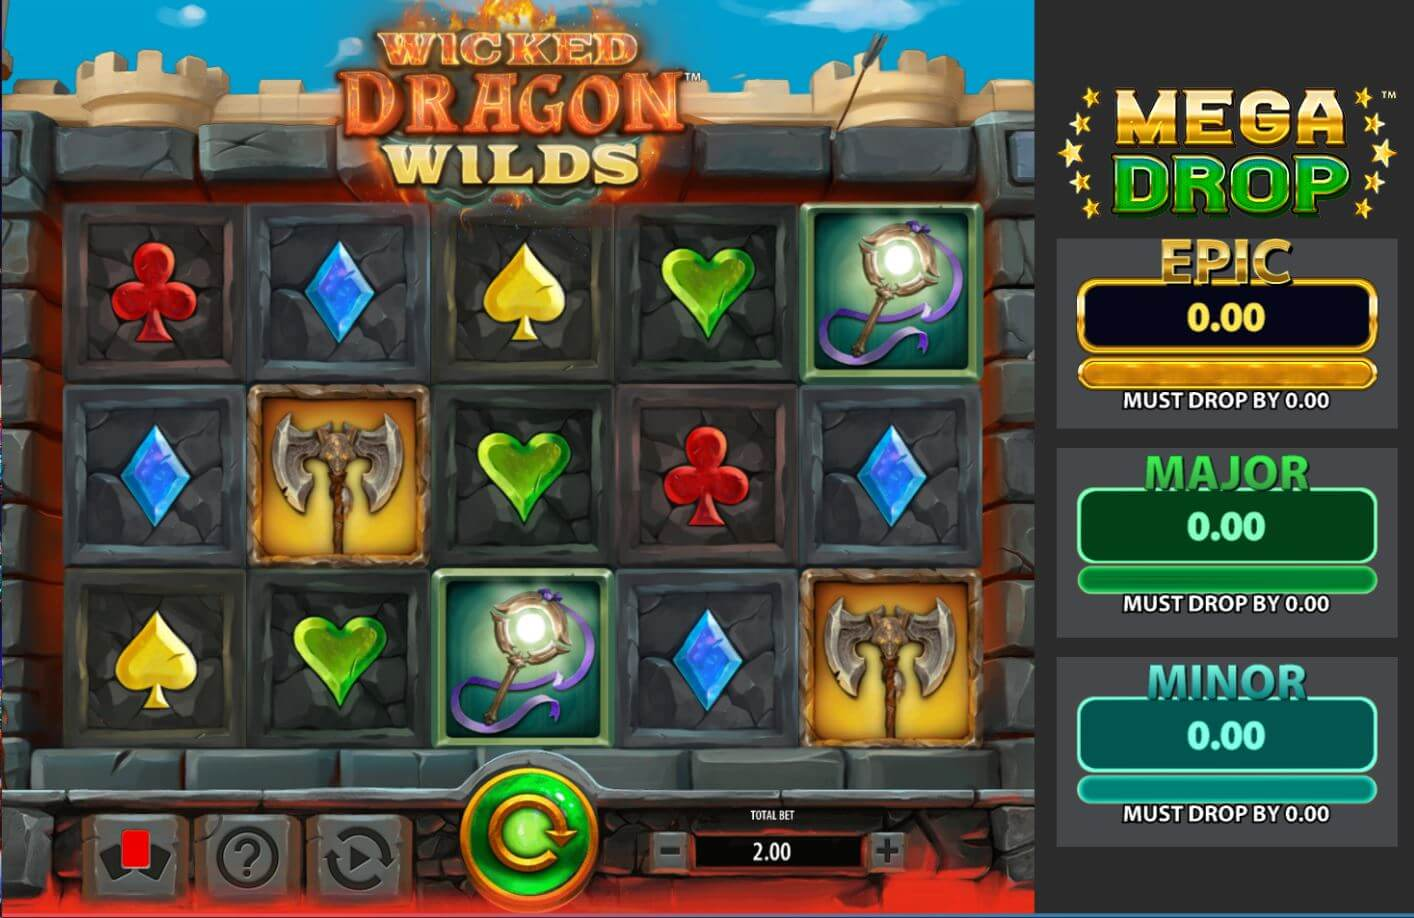 Wicked Dragon Wilds Slot Gameplay